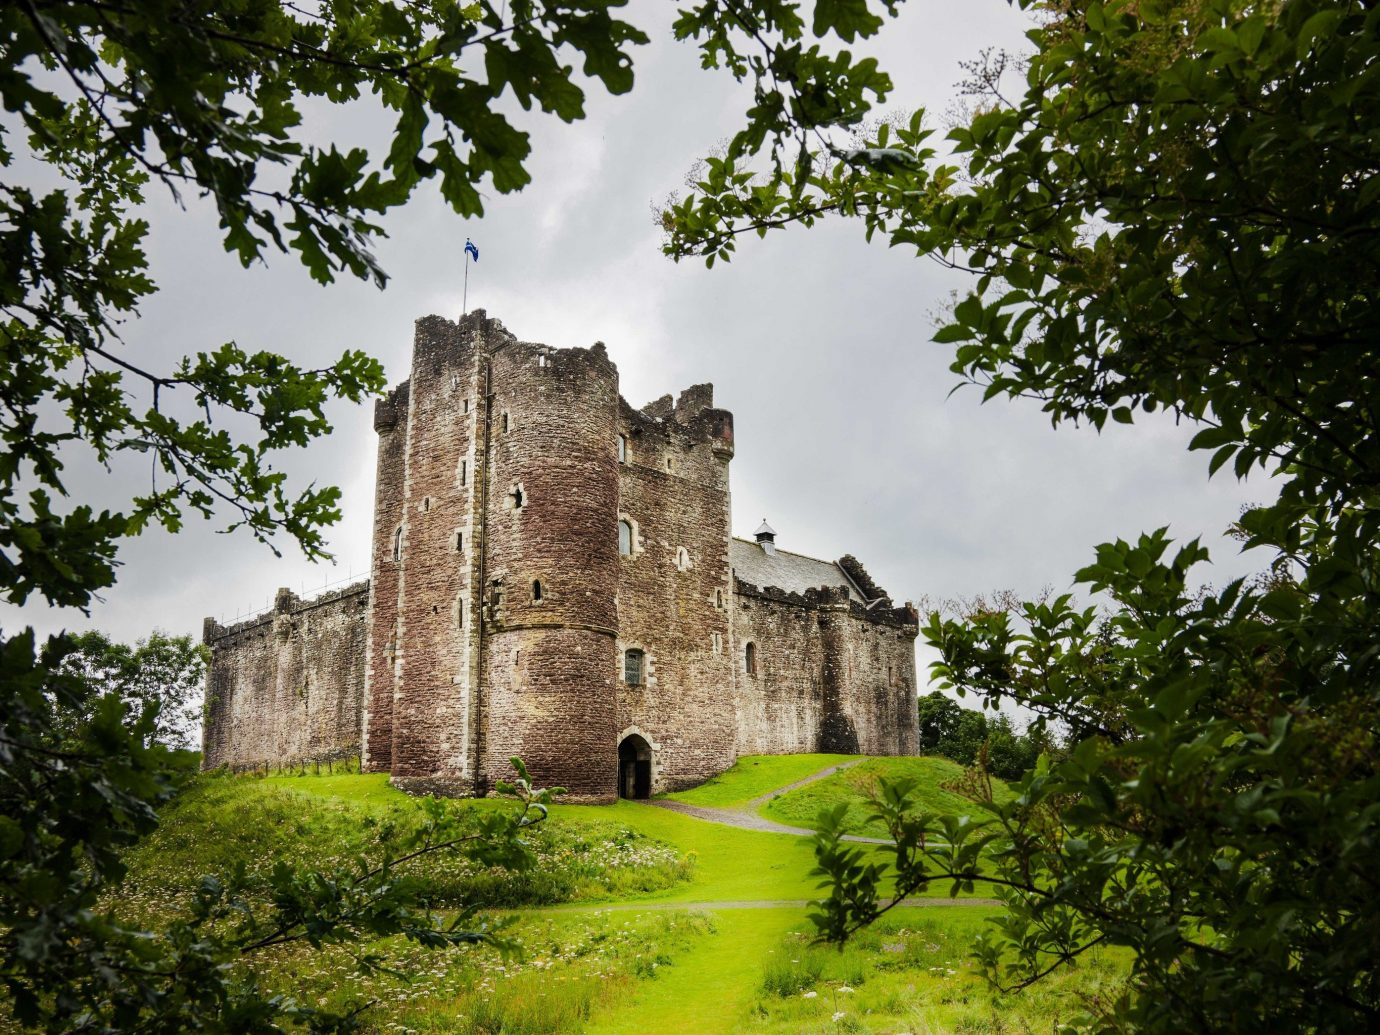 Offbeat tree outdoor building castle sky Ruins château medieval architecture grass national trust for places of historic interest or natural beauty fortification historic site stone estate old history stately home archaeological site landscape abbey surrounded lush